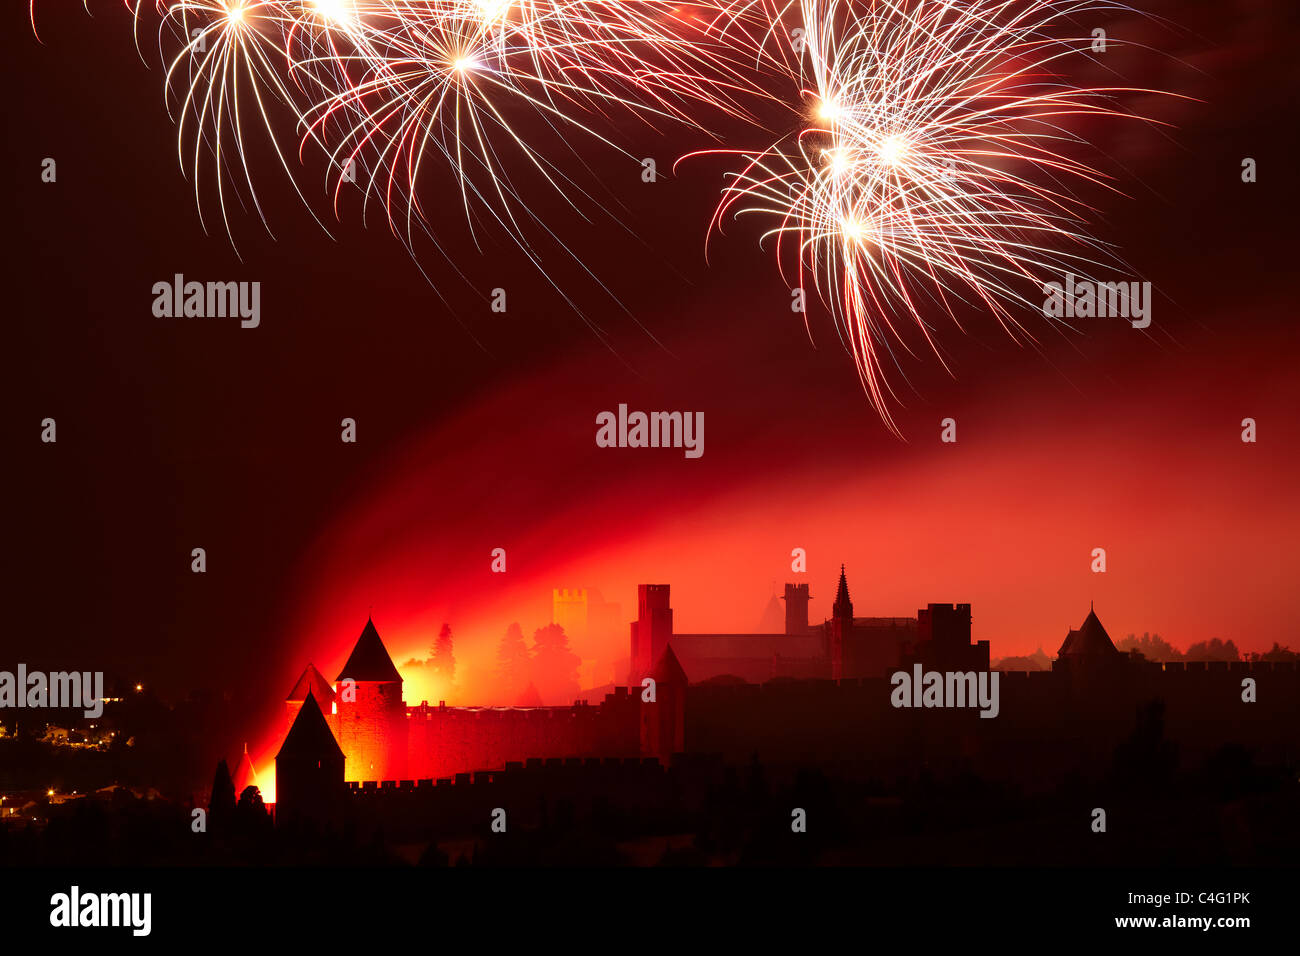 Le jour de la bastille plus d'artifice Carcassonne, Aude, Midi-Pyrénées, France Photo Stock